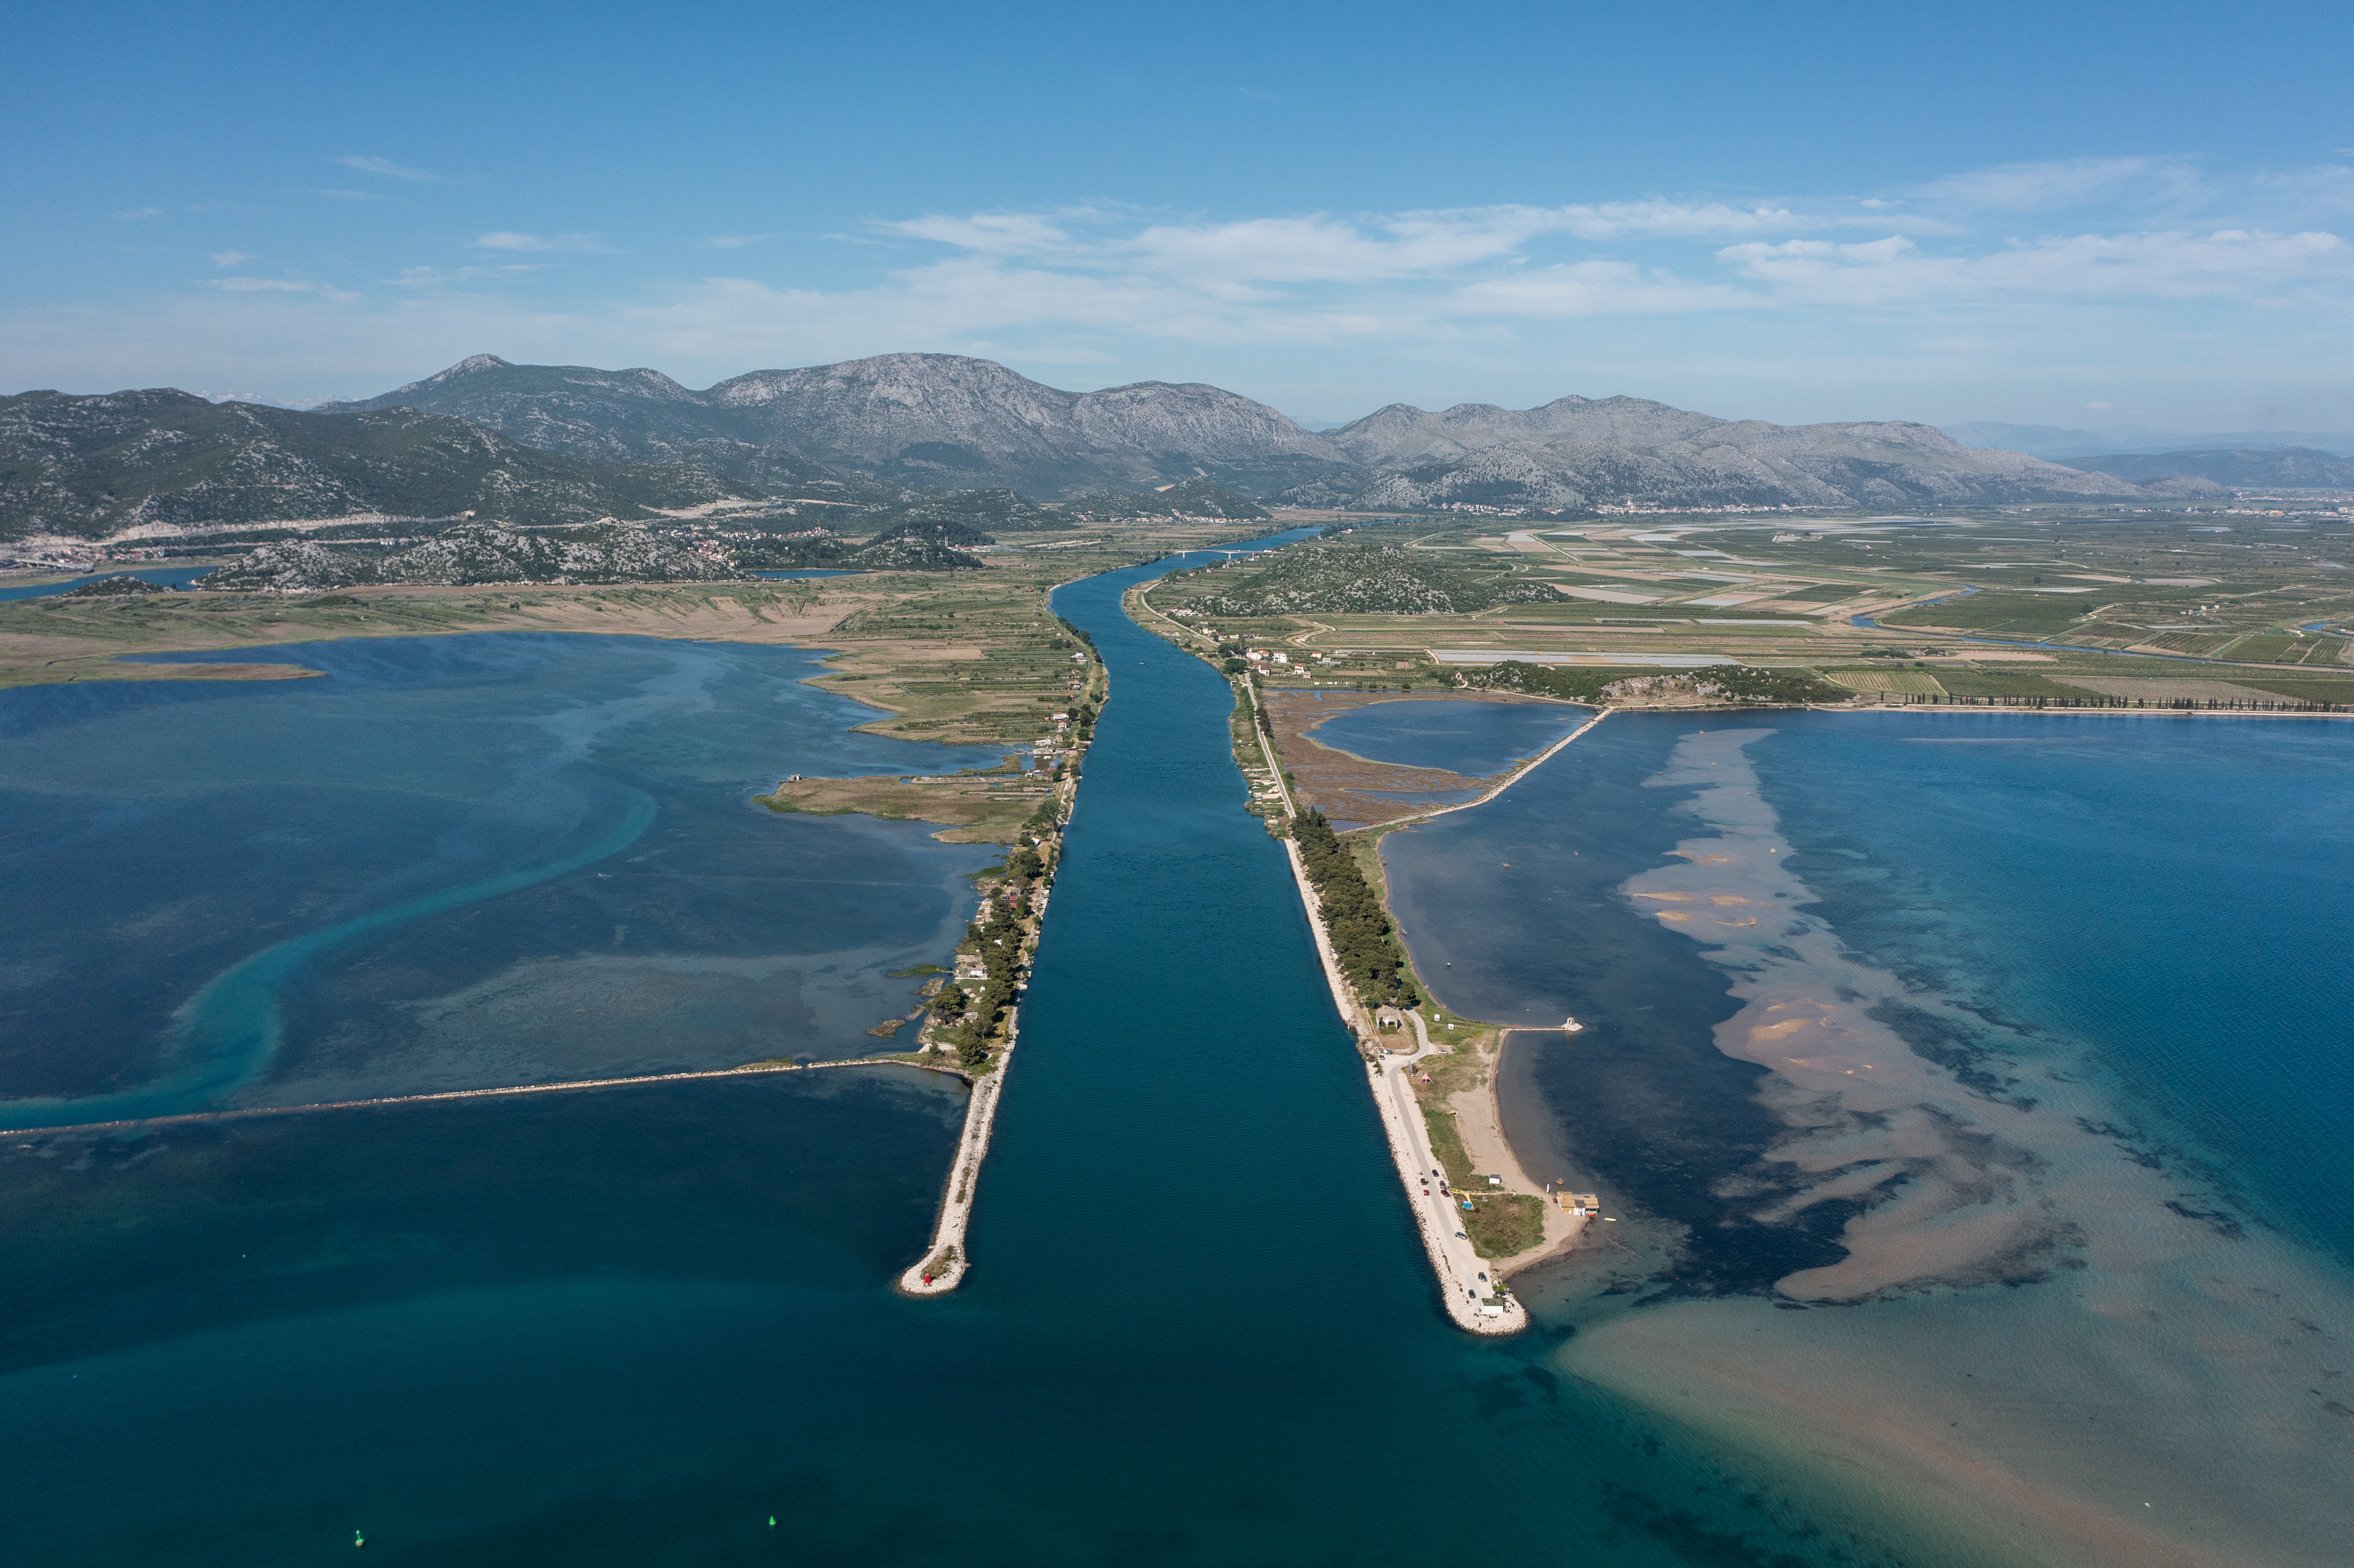 Mouth of the Neretva river is seen near Ploce, Croatia, May 10, 2021. Picture taken with a drone on May 10, 2021. REUTERS/Antonio Bronic